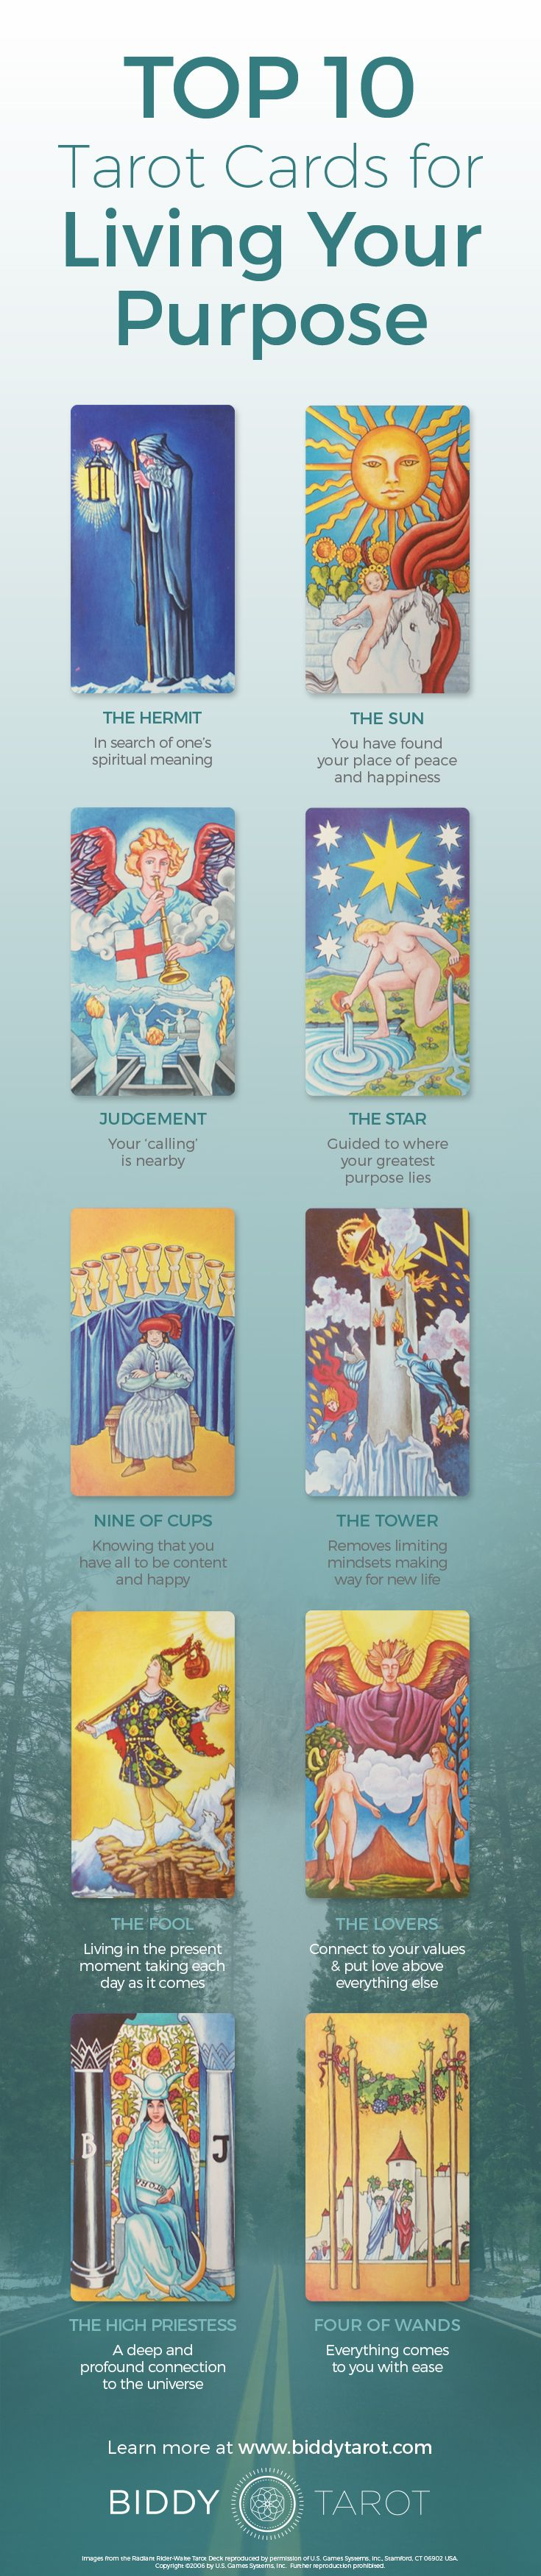 It's a wonderful feeling to be in tune with the #universe! When these #Tarot cards appear in a reading, you're on the path to living your #Life #Purpose to the fullest! Download your free copy of my Top 10 Tarot Cards for love, finances, career, life purpose and so much more at www.biddytarot.co... It's my gift to you!